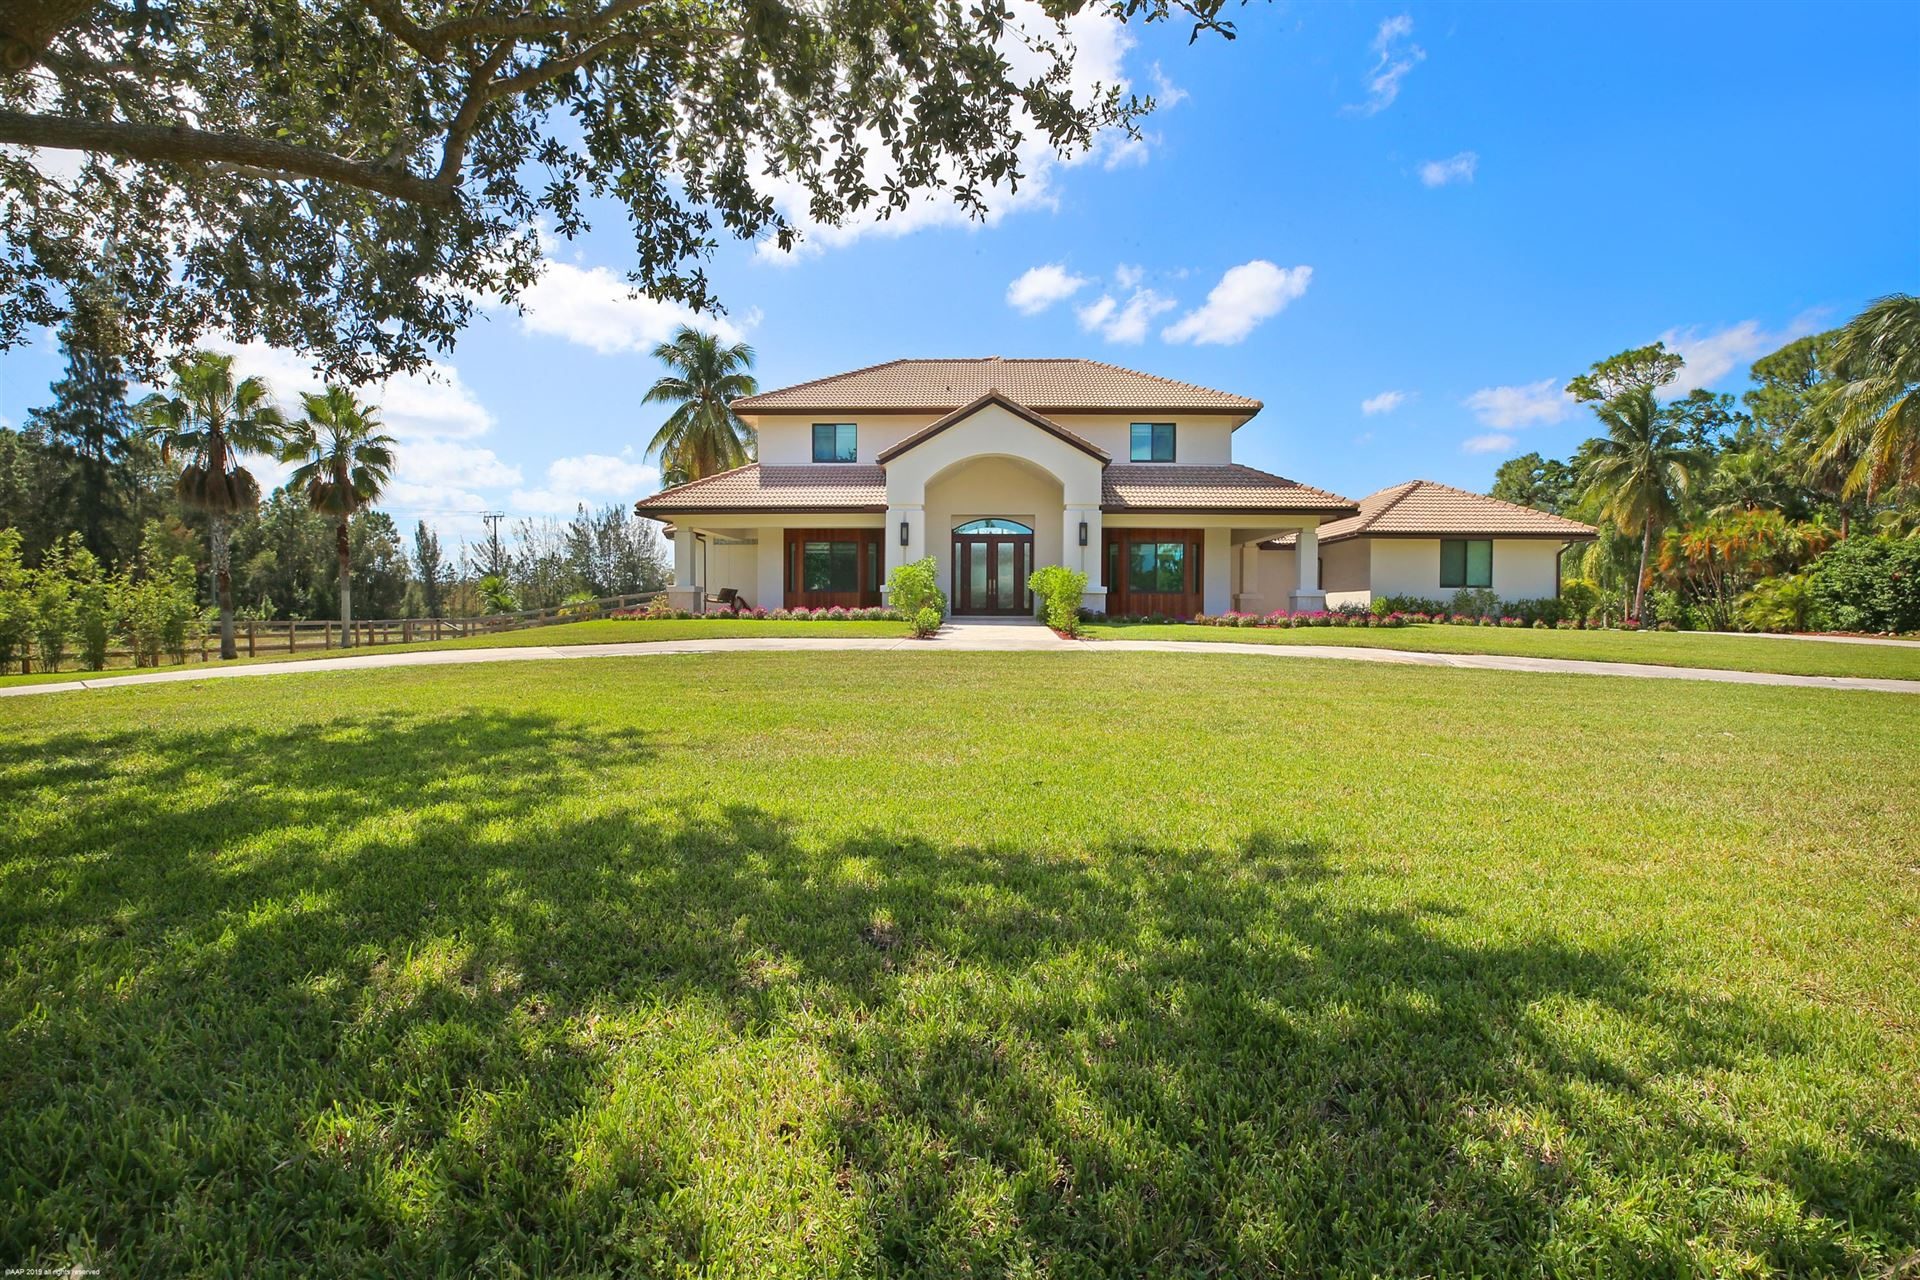 6449 Duckweed, Lake Worth, 33449 Photo 1